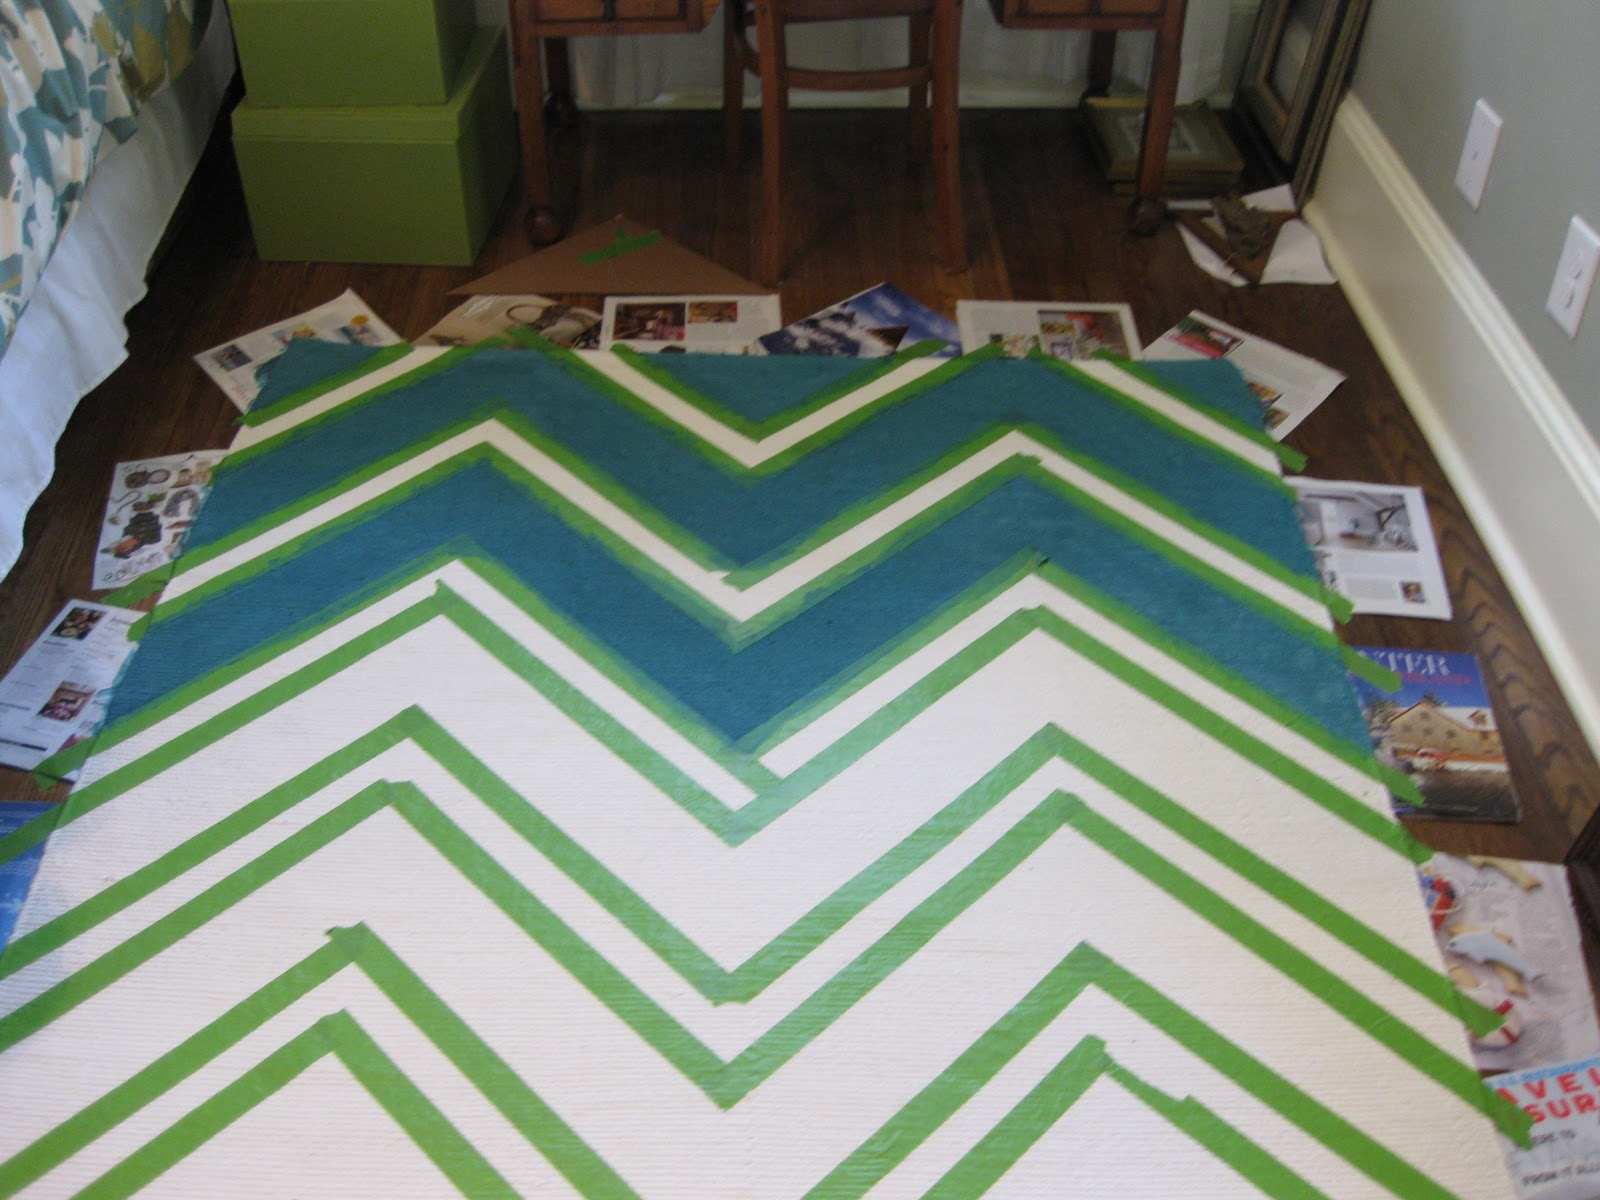 decor ballard design outdoor rugs lime green chevron rug chevron rug grey indoor outdoor rug target chevron rug